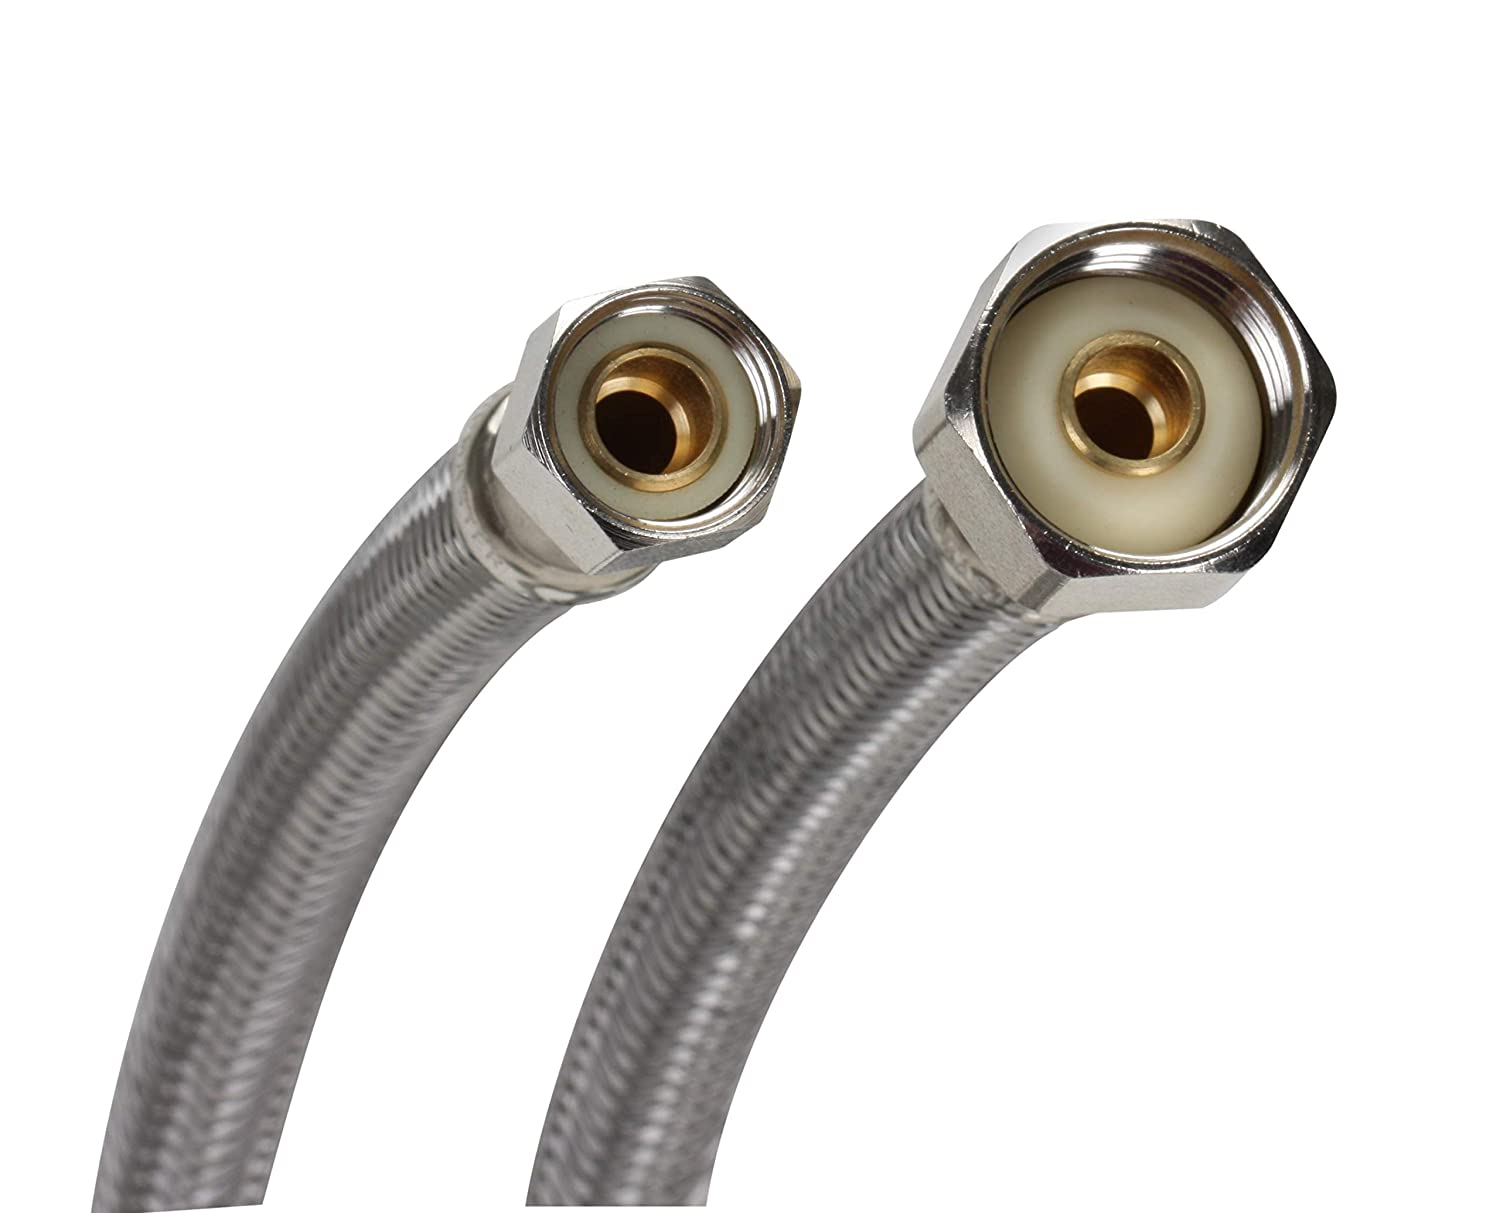 Fluidmaster B1F20 Faucet Connector, Braided Stainless Steel - 3/8 Female  Compression Thread x 1/2 FIP Thread, 20-Inch Length